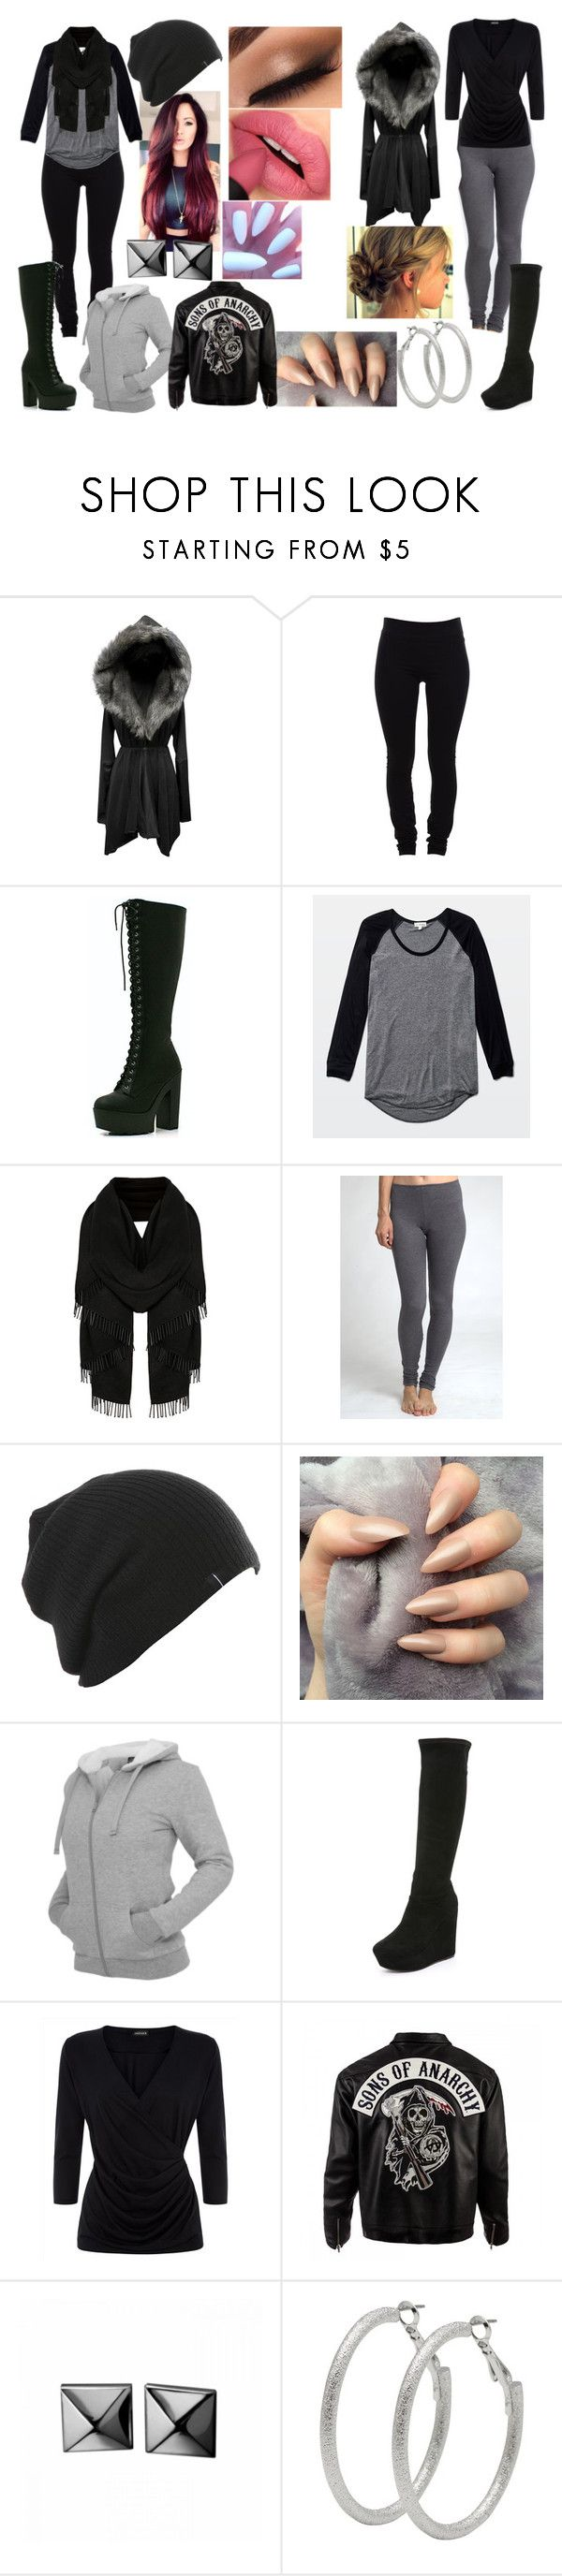 """""""Leo and Sid"""" by batman-girl616 ❤ liked on Polyvore featuring Helmut Lang, CO, Wilfred, Alice + Olivia, Jaeger, Sons of Anarchy, Waterford and M&Co"""